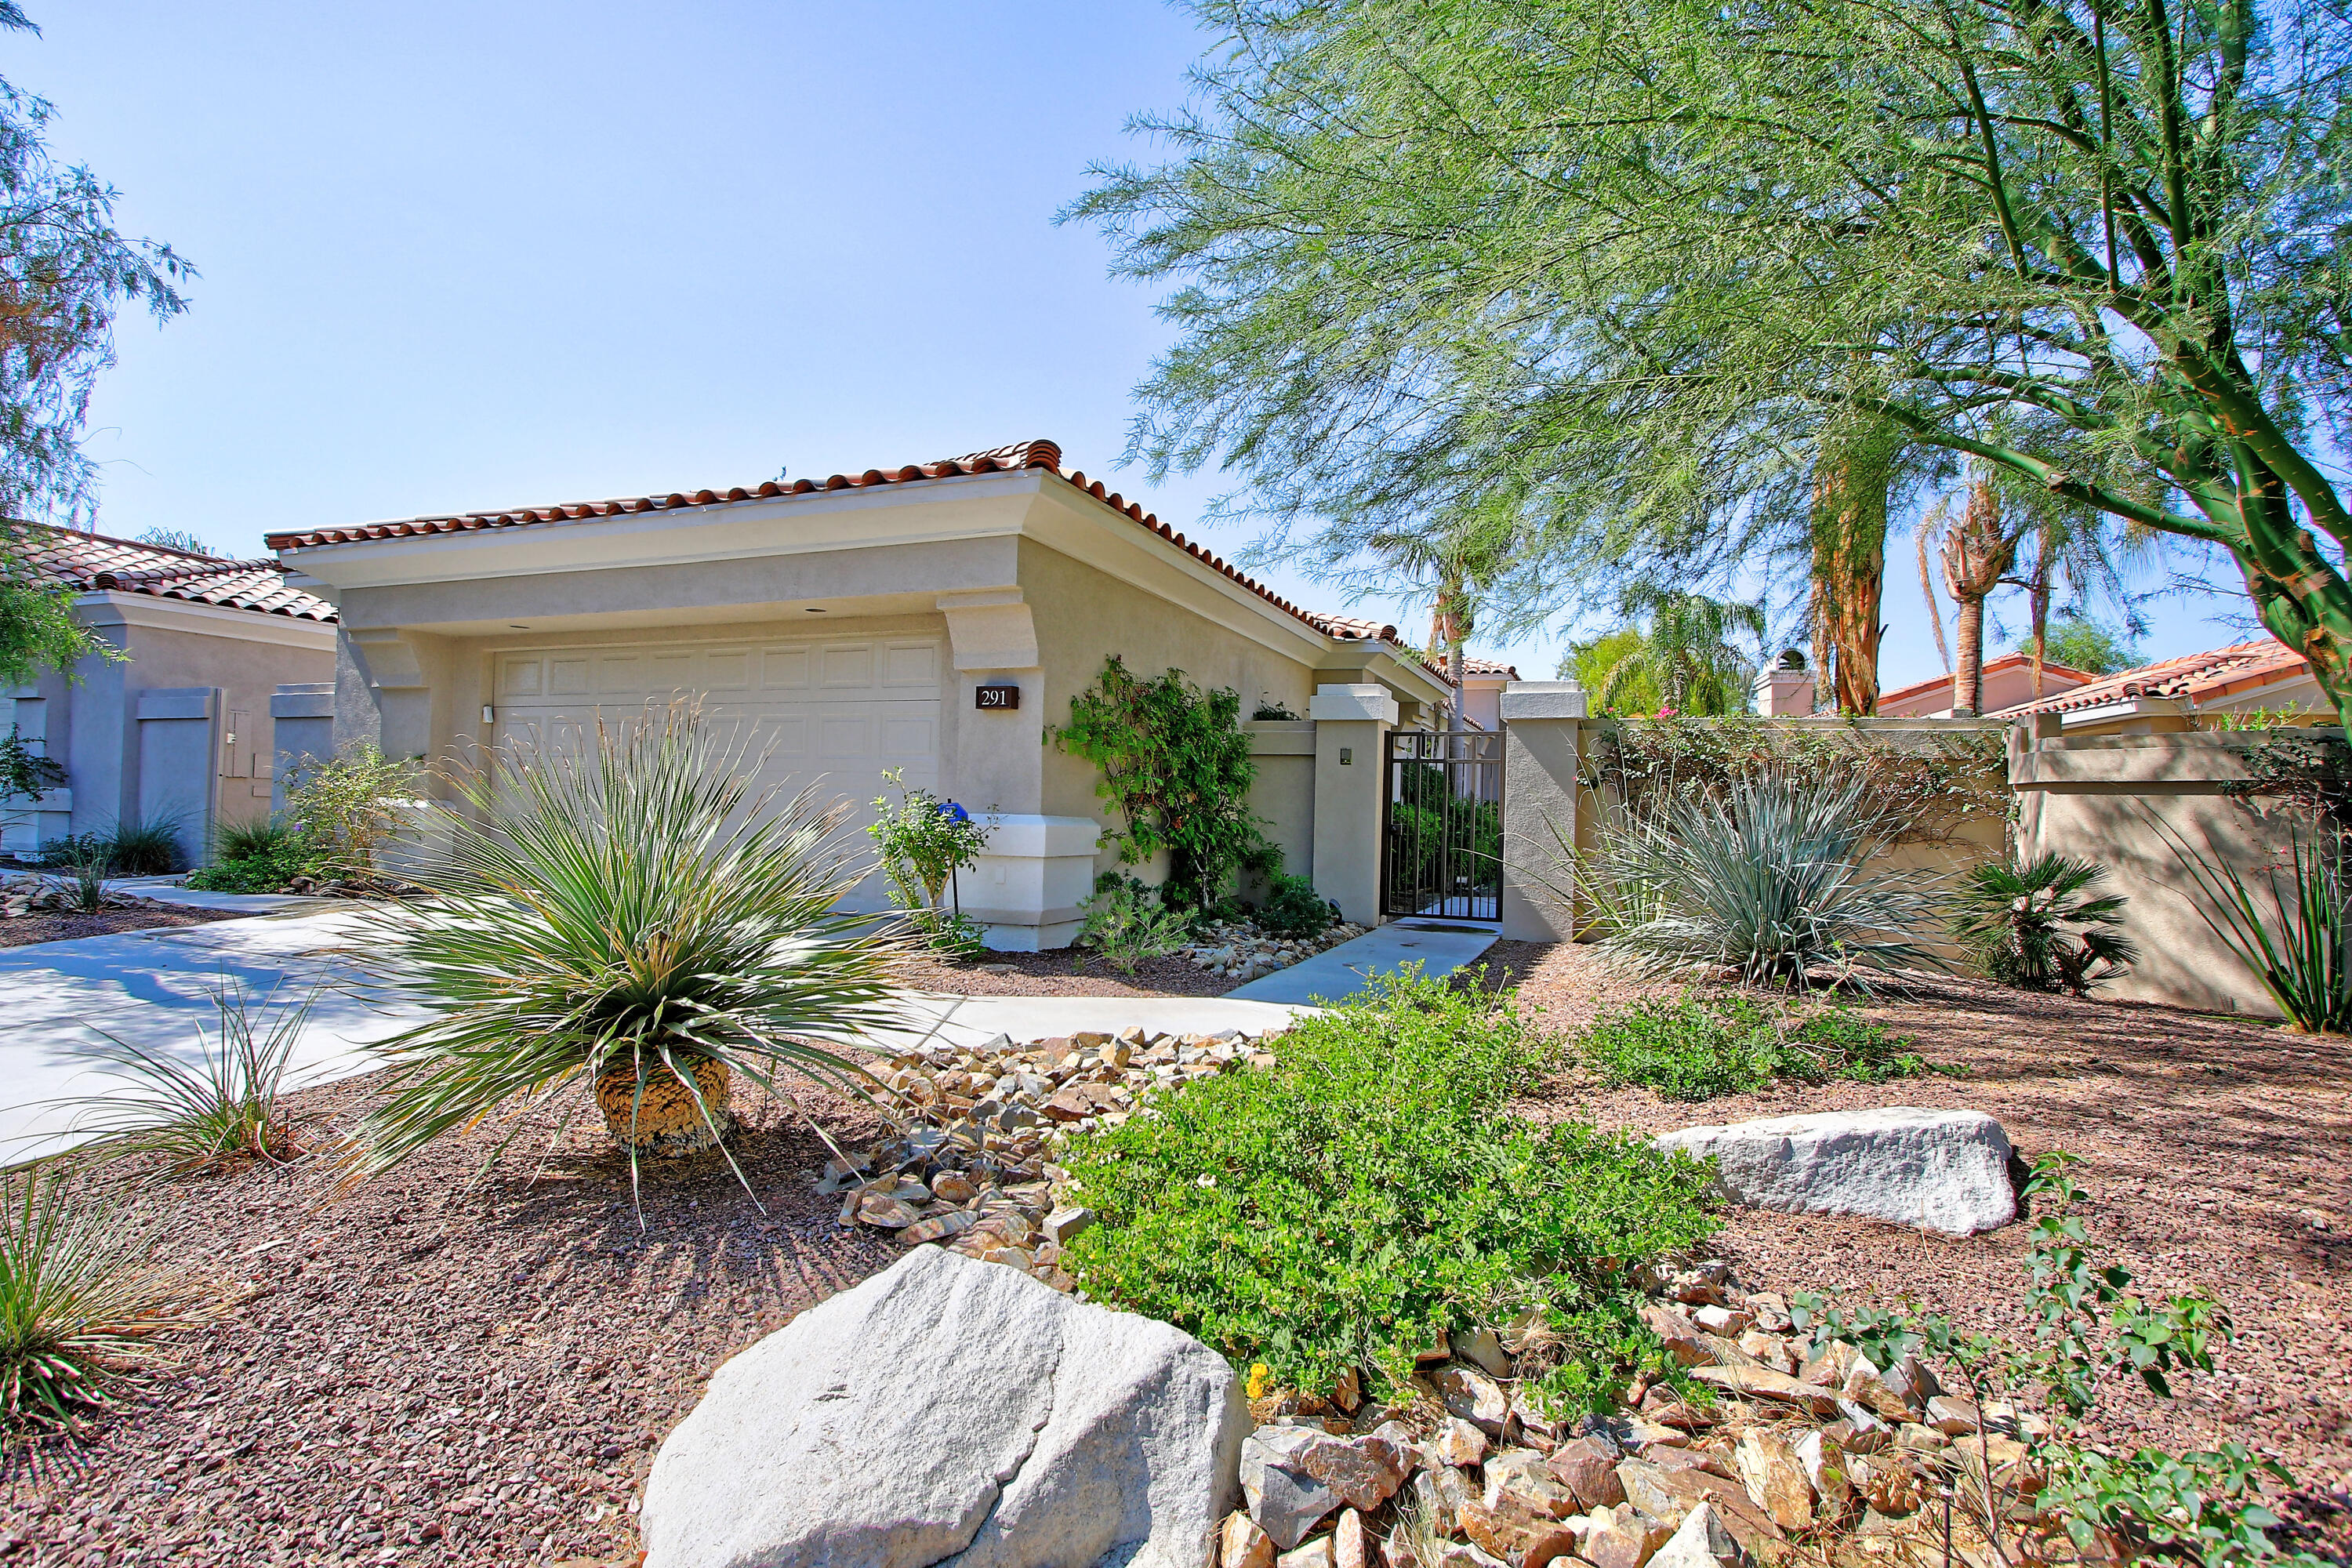 Don't Miss Out on this Southwest-facing Acacia 5 in Indian Ridge Country Club on the Grove #1 fairway with great mountain views.  This is the only home of this size and price for sale at this time in this sought after country club community.   2368 square feet, 3 BR, 3.5 Bath, with an open, inviting floor plan. The spacious kitchen is open to the family room, living room has built-ins, wet bar and a fireplace and open to the formal dining room with outdoor views.  The master bedroom has a patio door, full bath and a walk-in closet with built in cabinets.  The 2 guest bedrooms have their own bathrooms. Plus, there is a powder room. This property has No steps. The garage is a large 2 car garage with room for a golf cart. Club and Golf memberships are available.   Close proximity to Club house and all other facilities.  Furnished per Inventory list.  Whether you are looking for a vacation home or a home to live in year-round, this home is waiting for you to make it your perfect Desert Retreat!